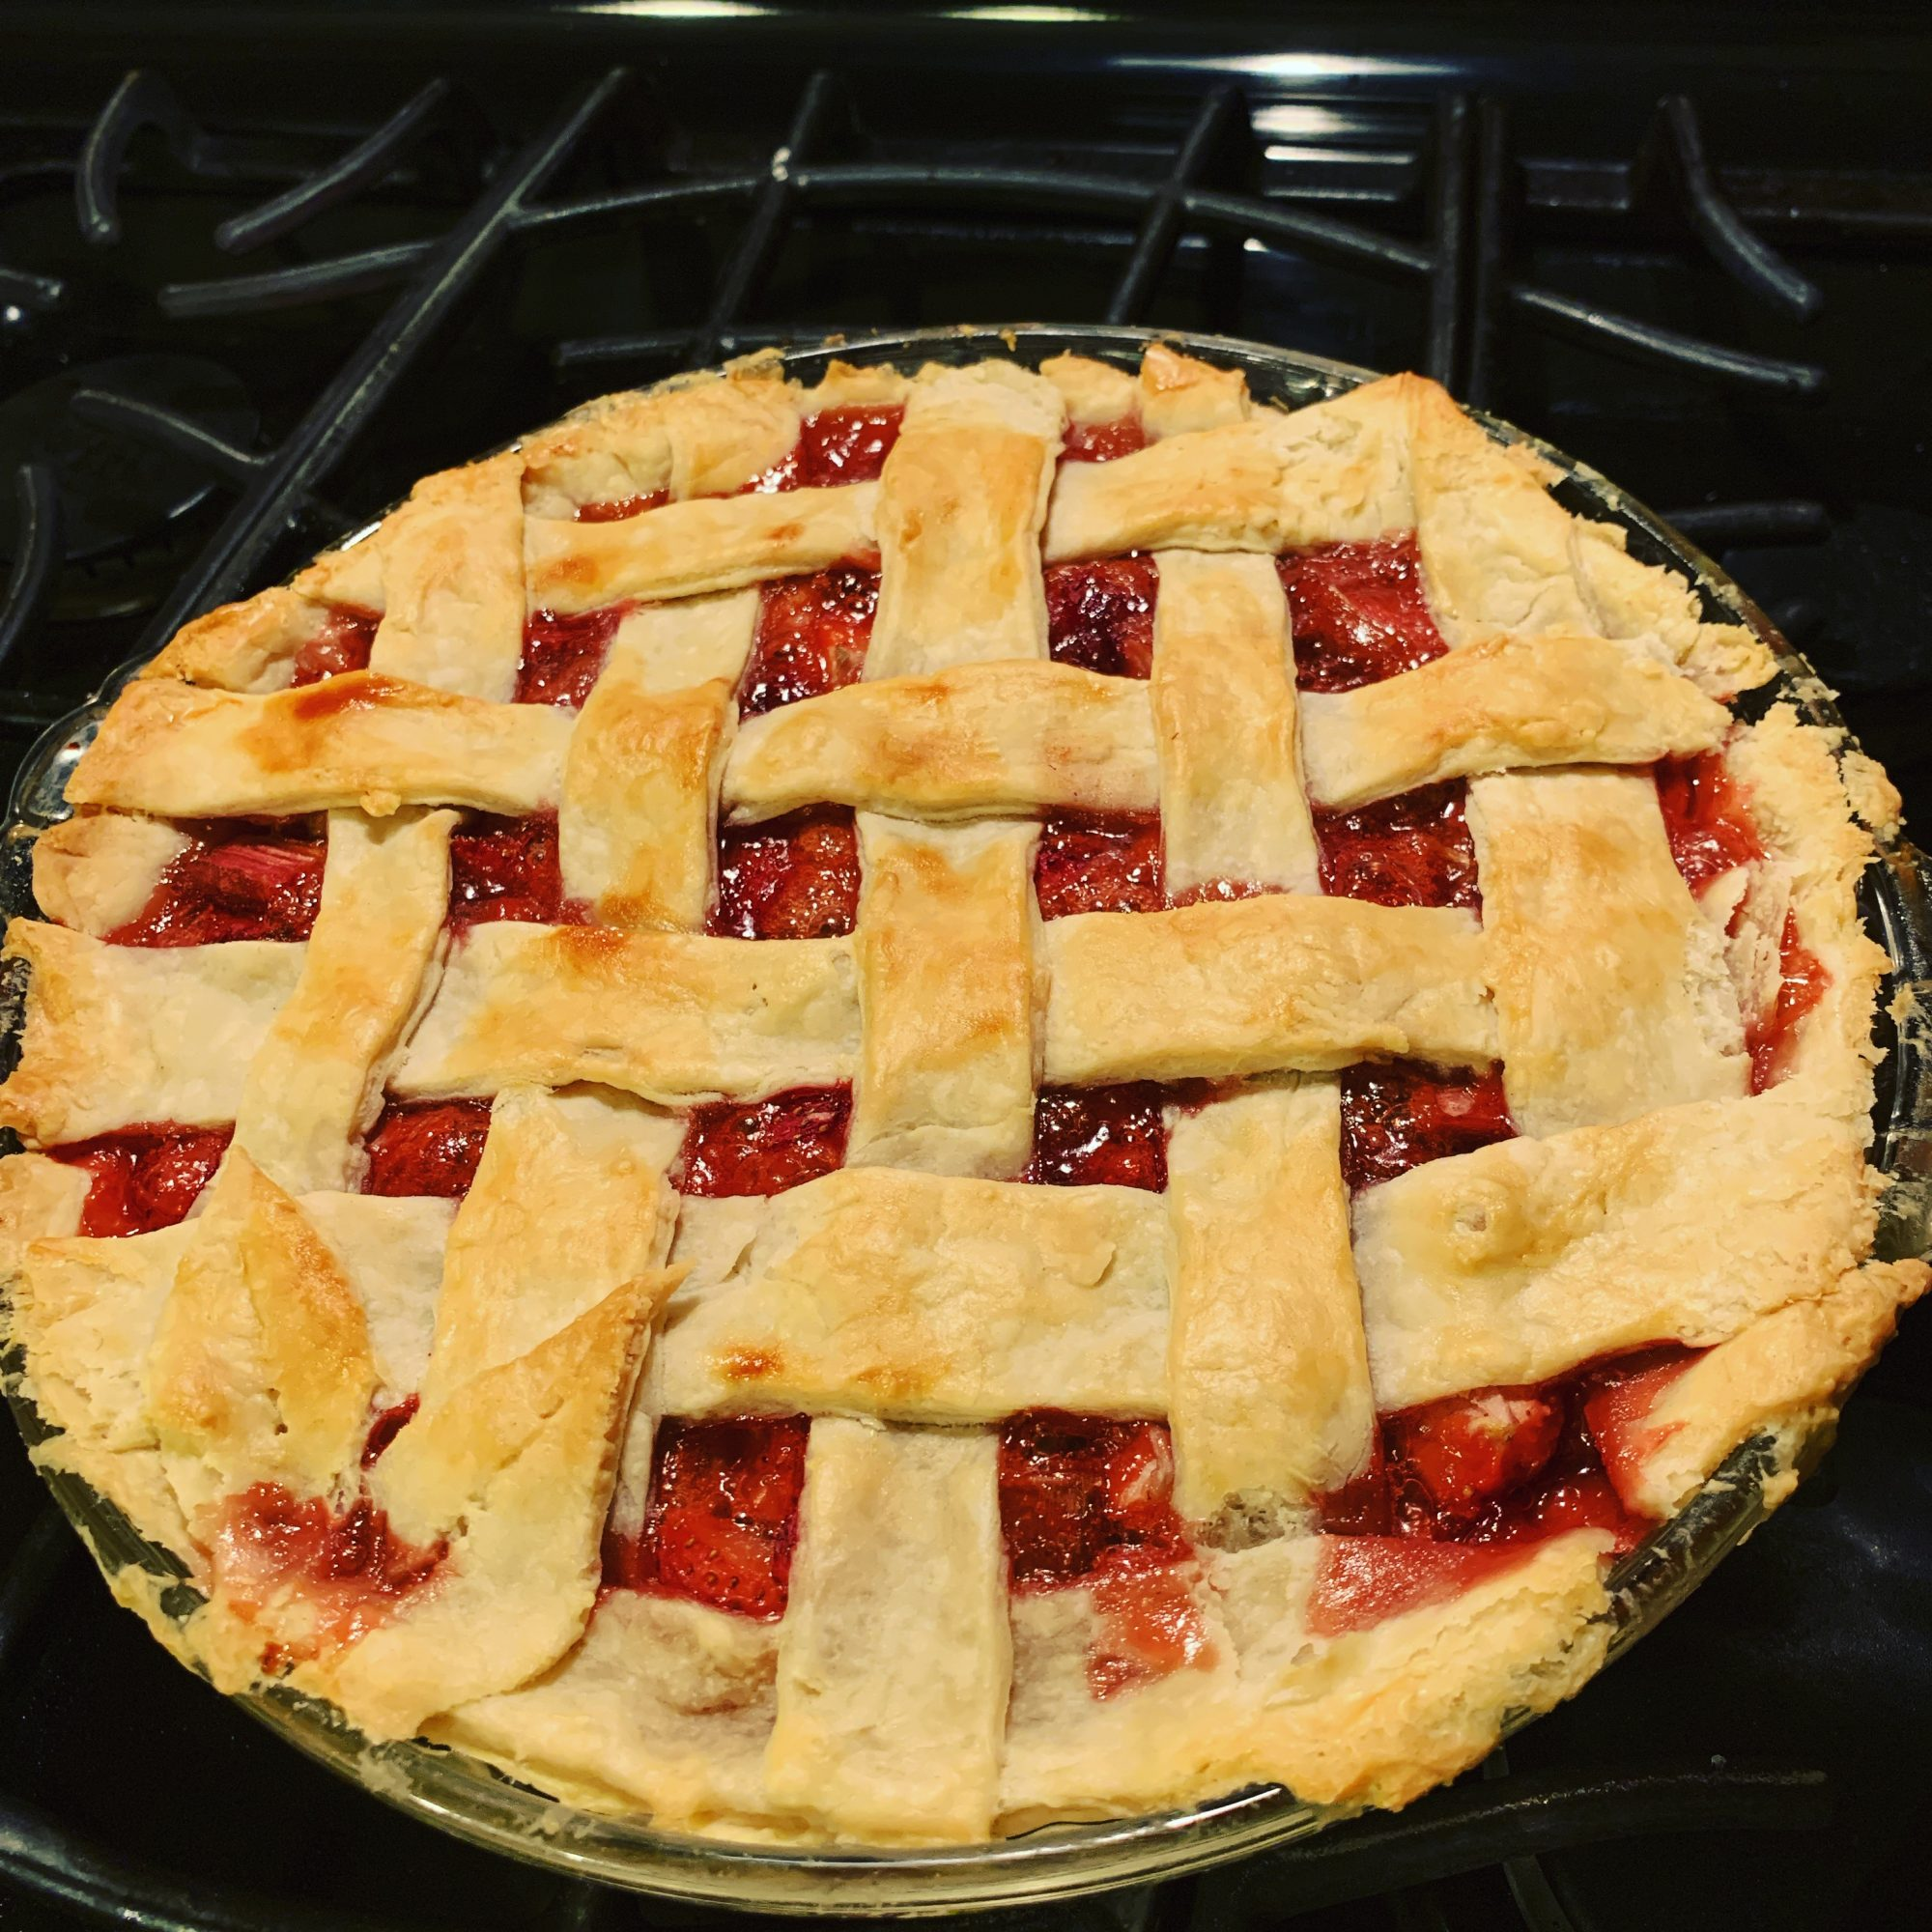 Strawberry Rhubarb Pie on a stovetop